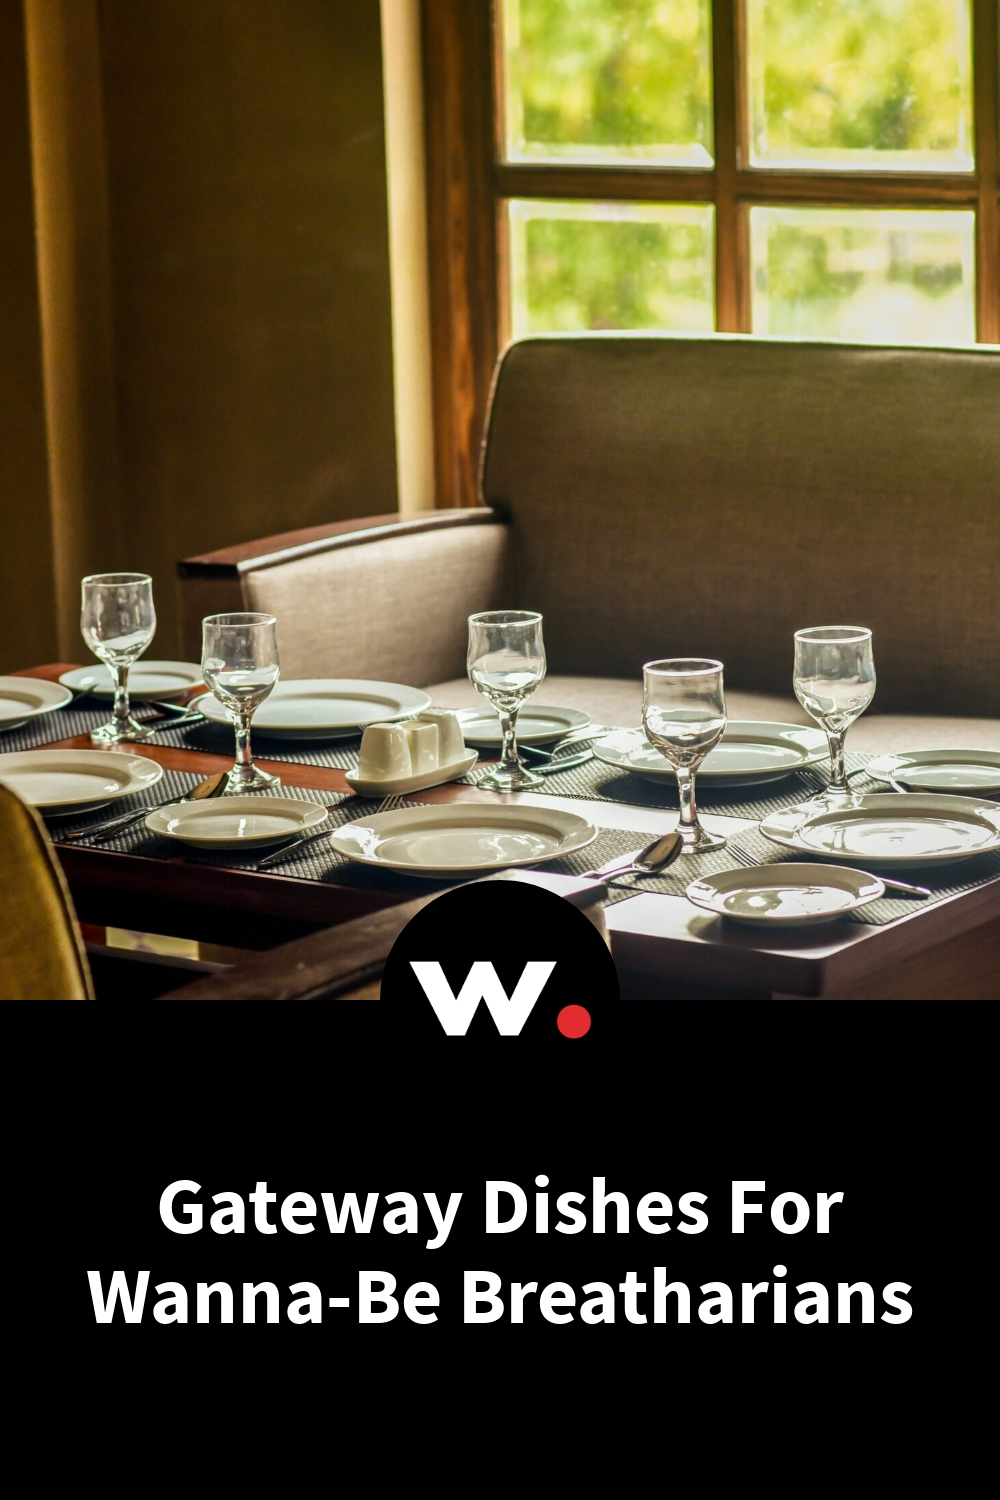 Gateway Dishes For Wanna-Be Breatharians